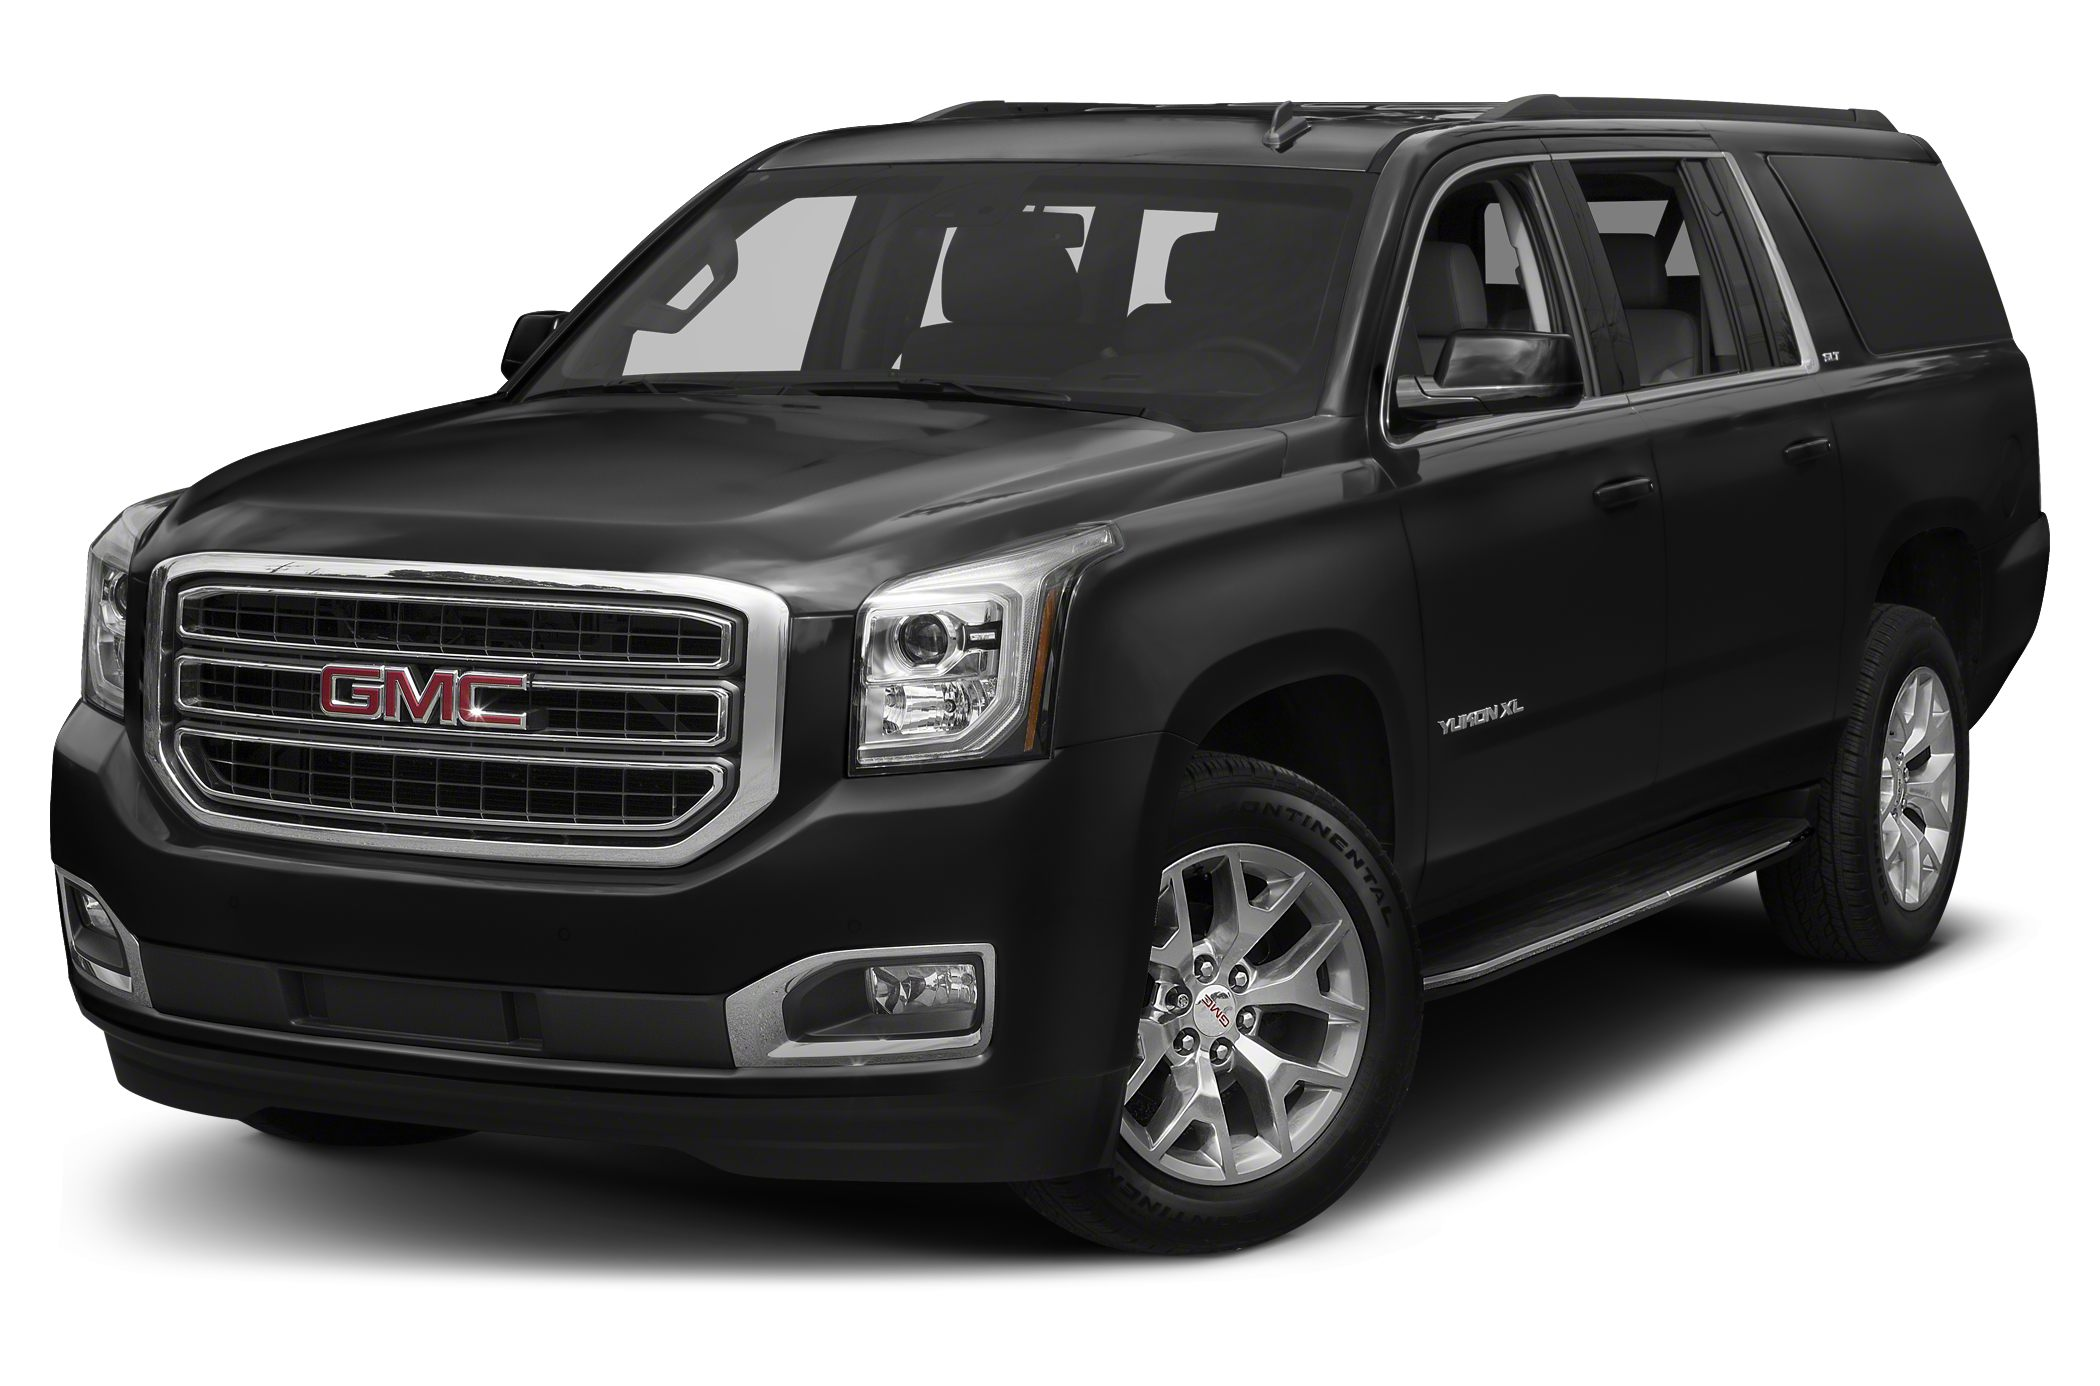 2015 GMC Yukon XL 1500 SLT SUV for sale in Canandaigua for $68,470 with 0 miles.